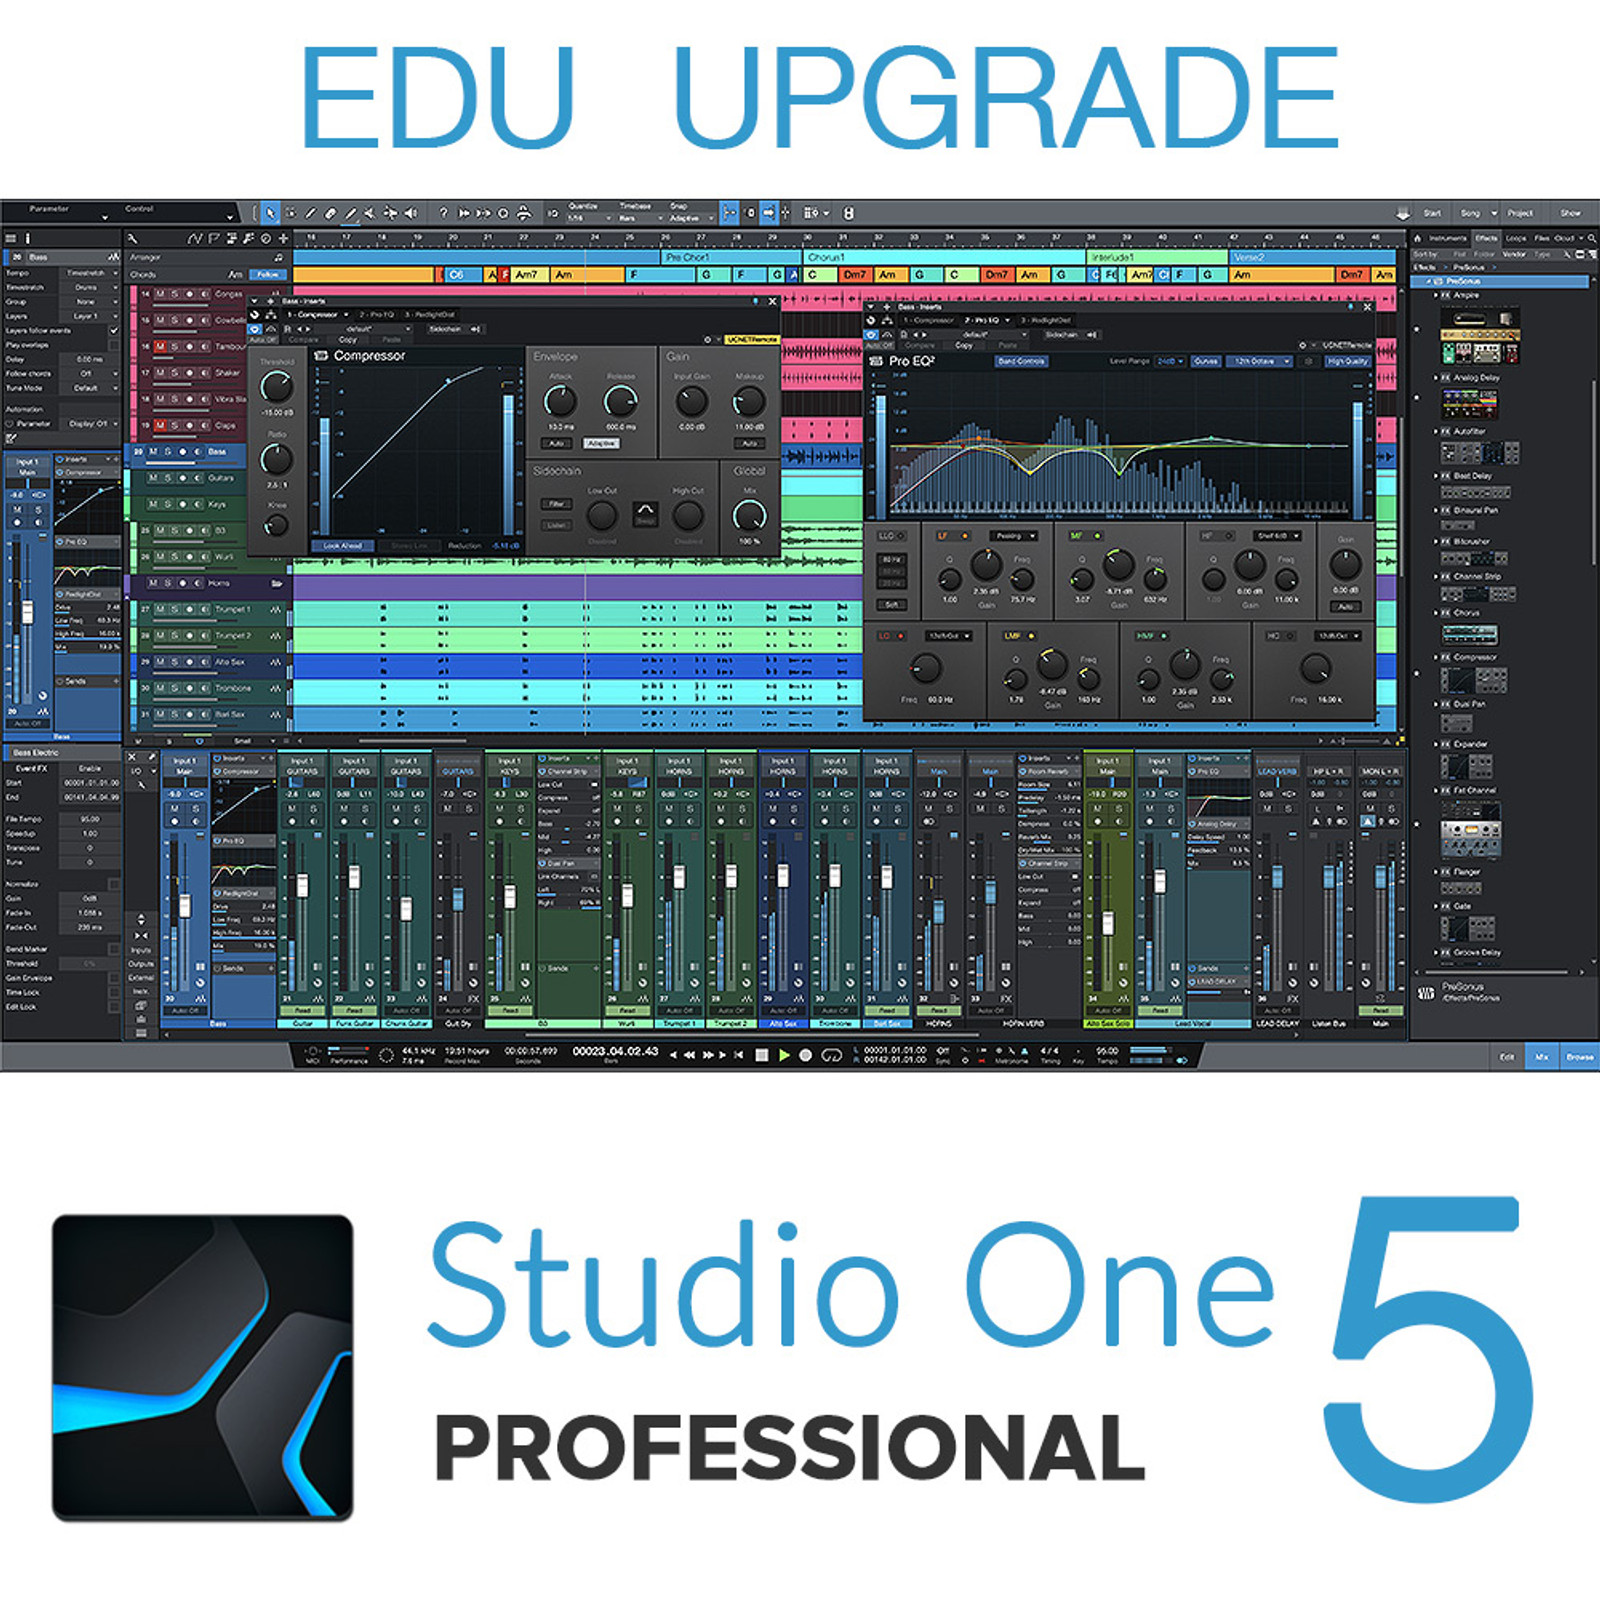 Studio One 5 EDU Pro to Pro Upgrade (from earlier versions of Pro)